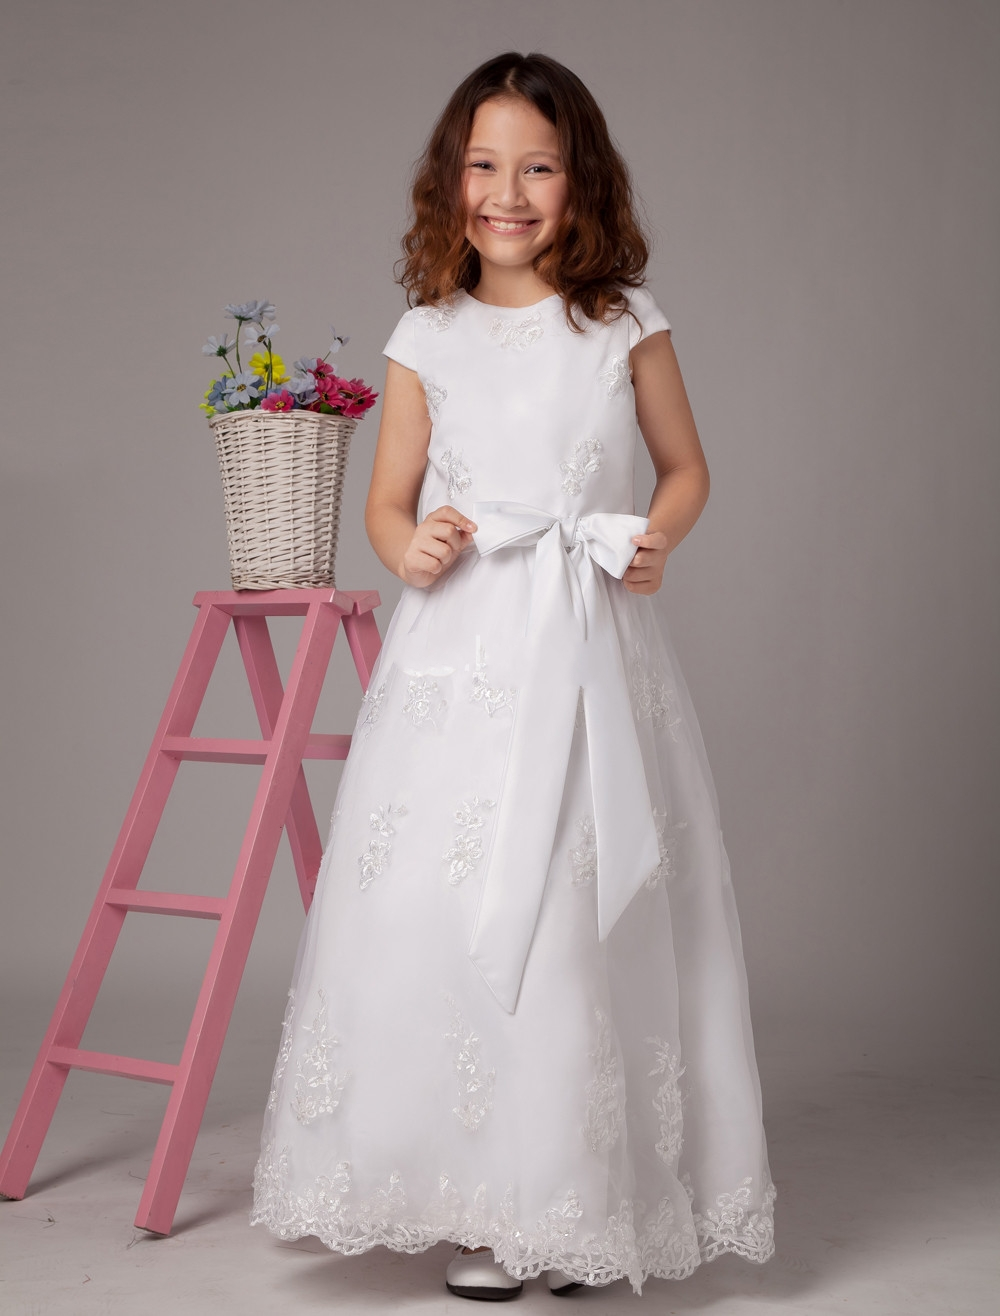 Ivory White Lace Flower Girl Dress Girls Pageant Dresses With Sash